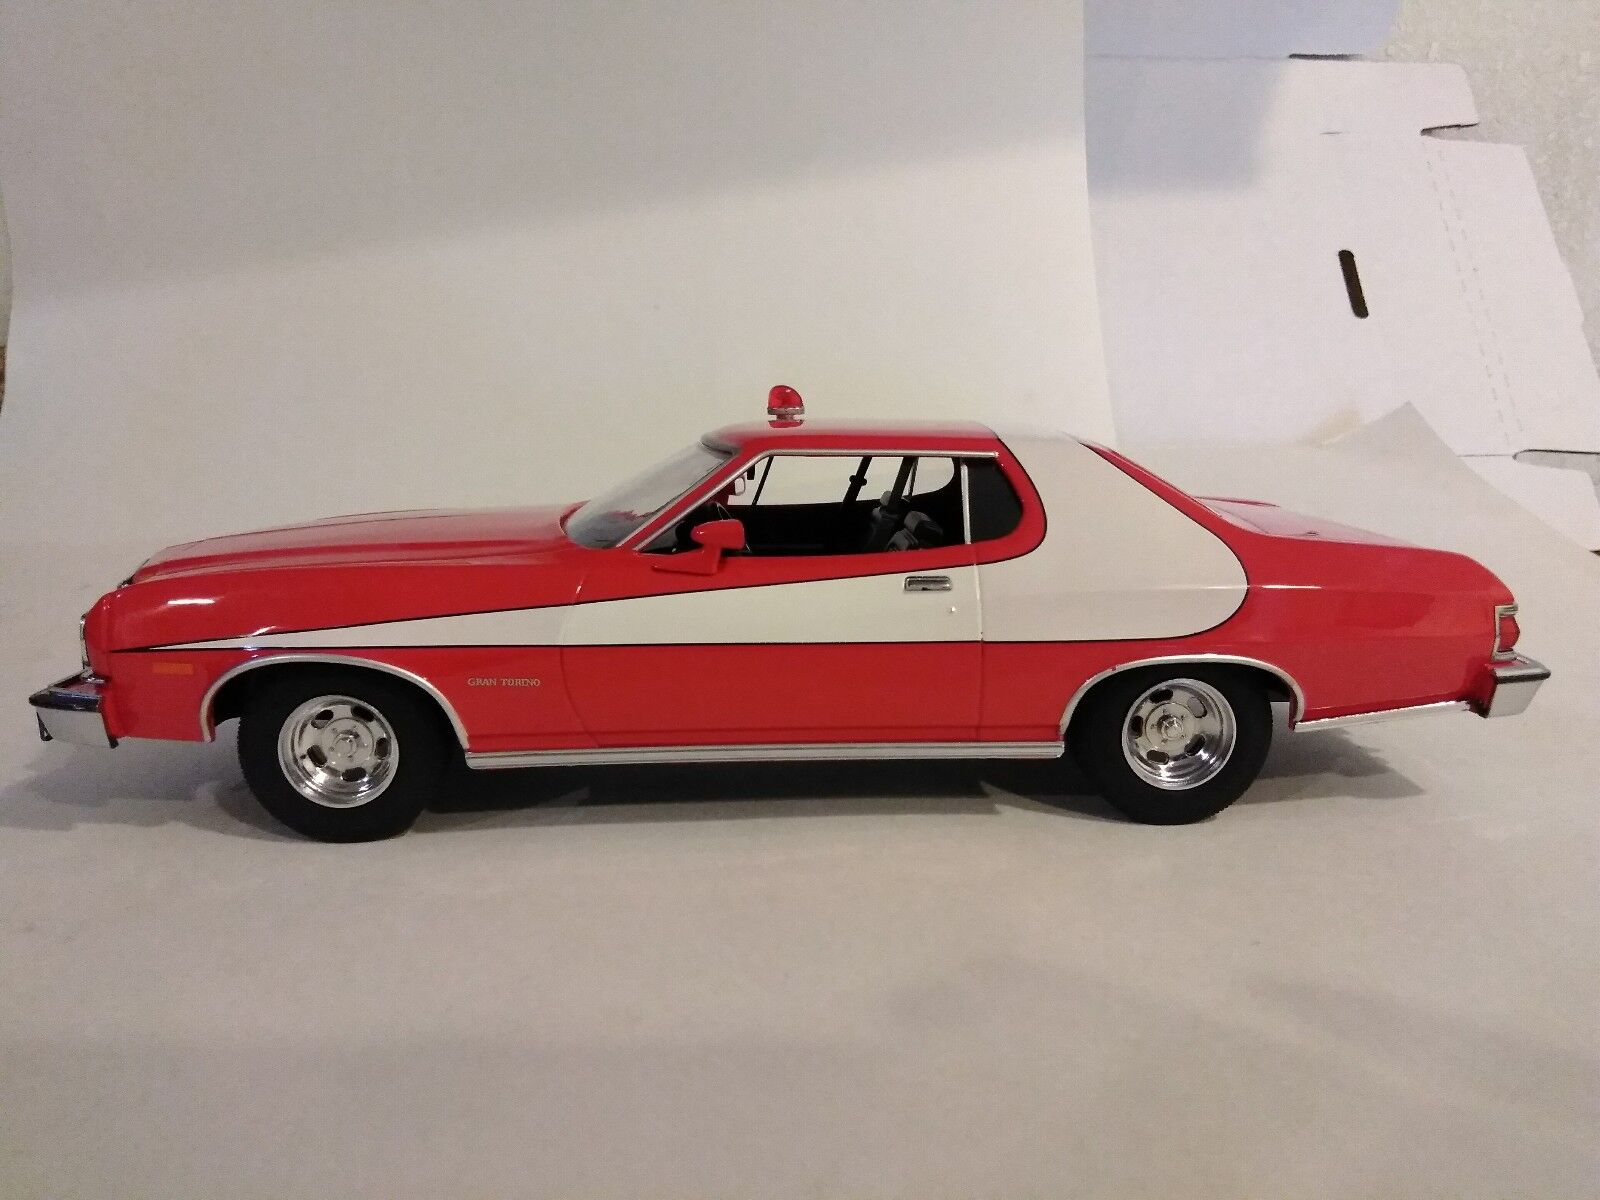 Paul Michael Glaser signed Starsky & Hutch 1 18 scale diecast car